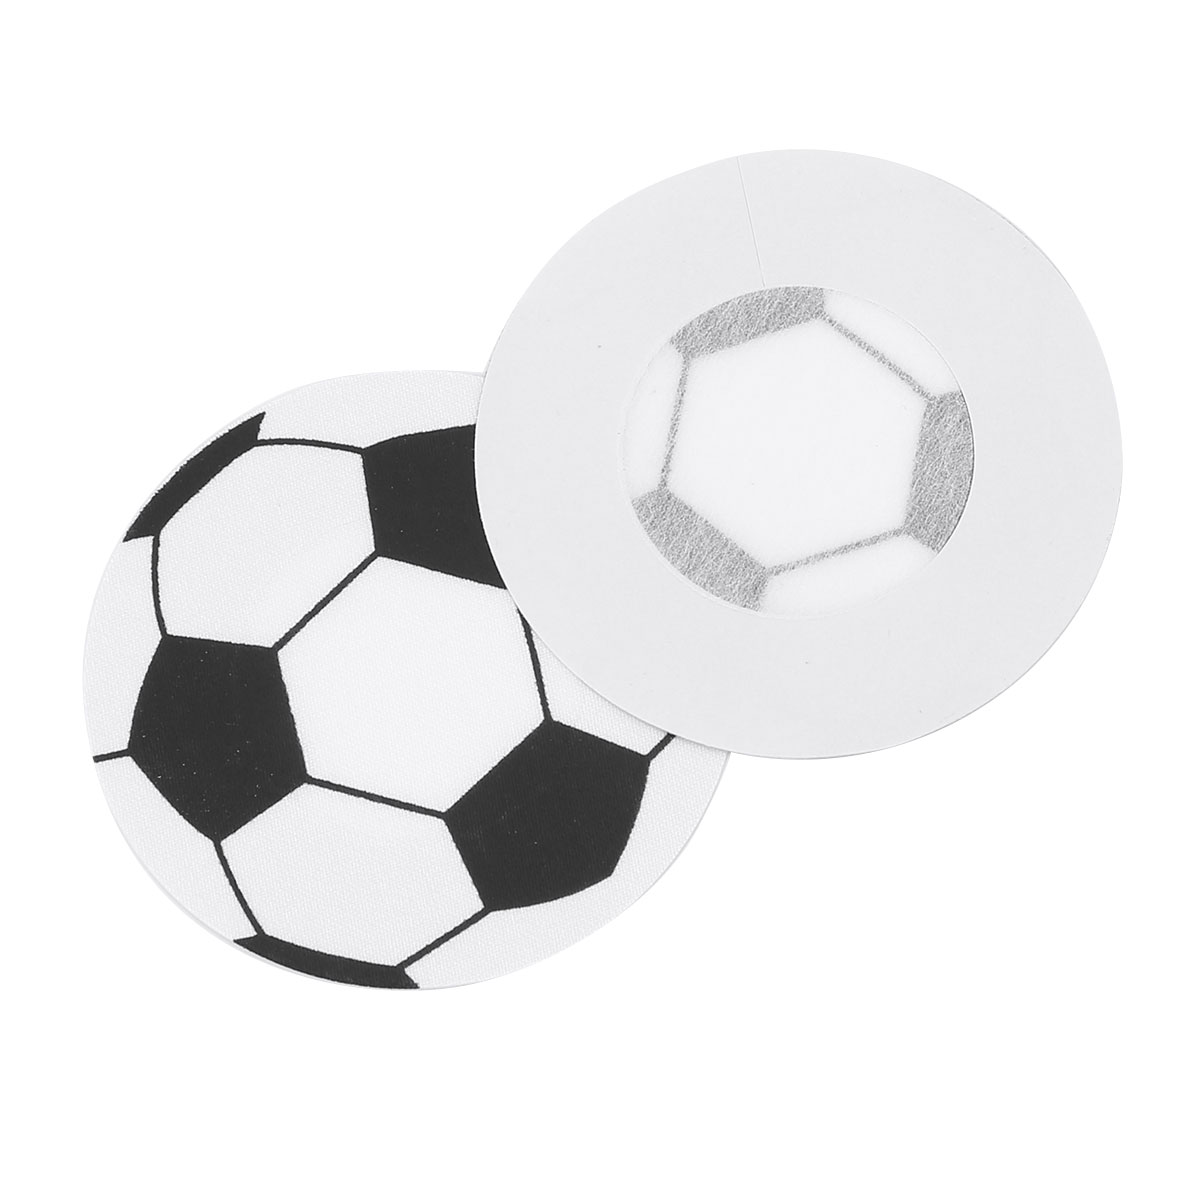 10 Pairs Football Shaped Disposable Satin Self Adhesive Breast Pasties  Nipple Covers Stickers Womens Intimates Accessories|intimates' accessories|  - AliExpress